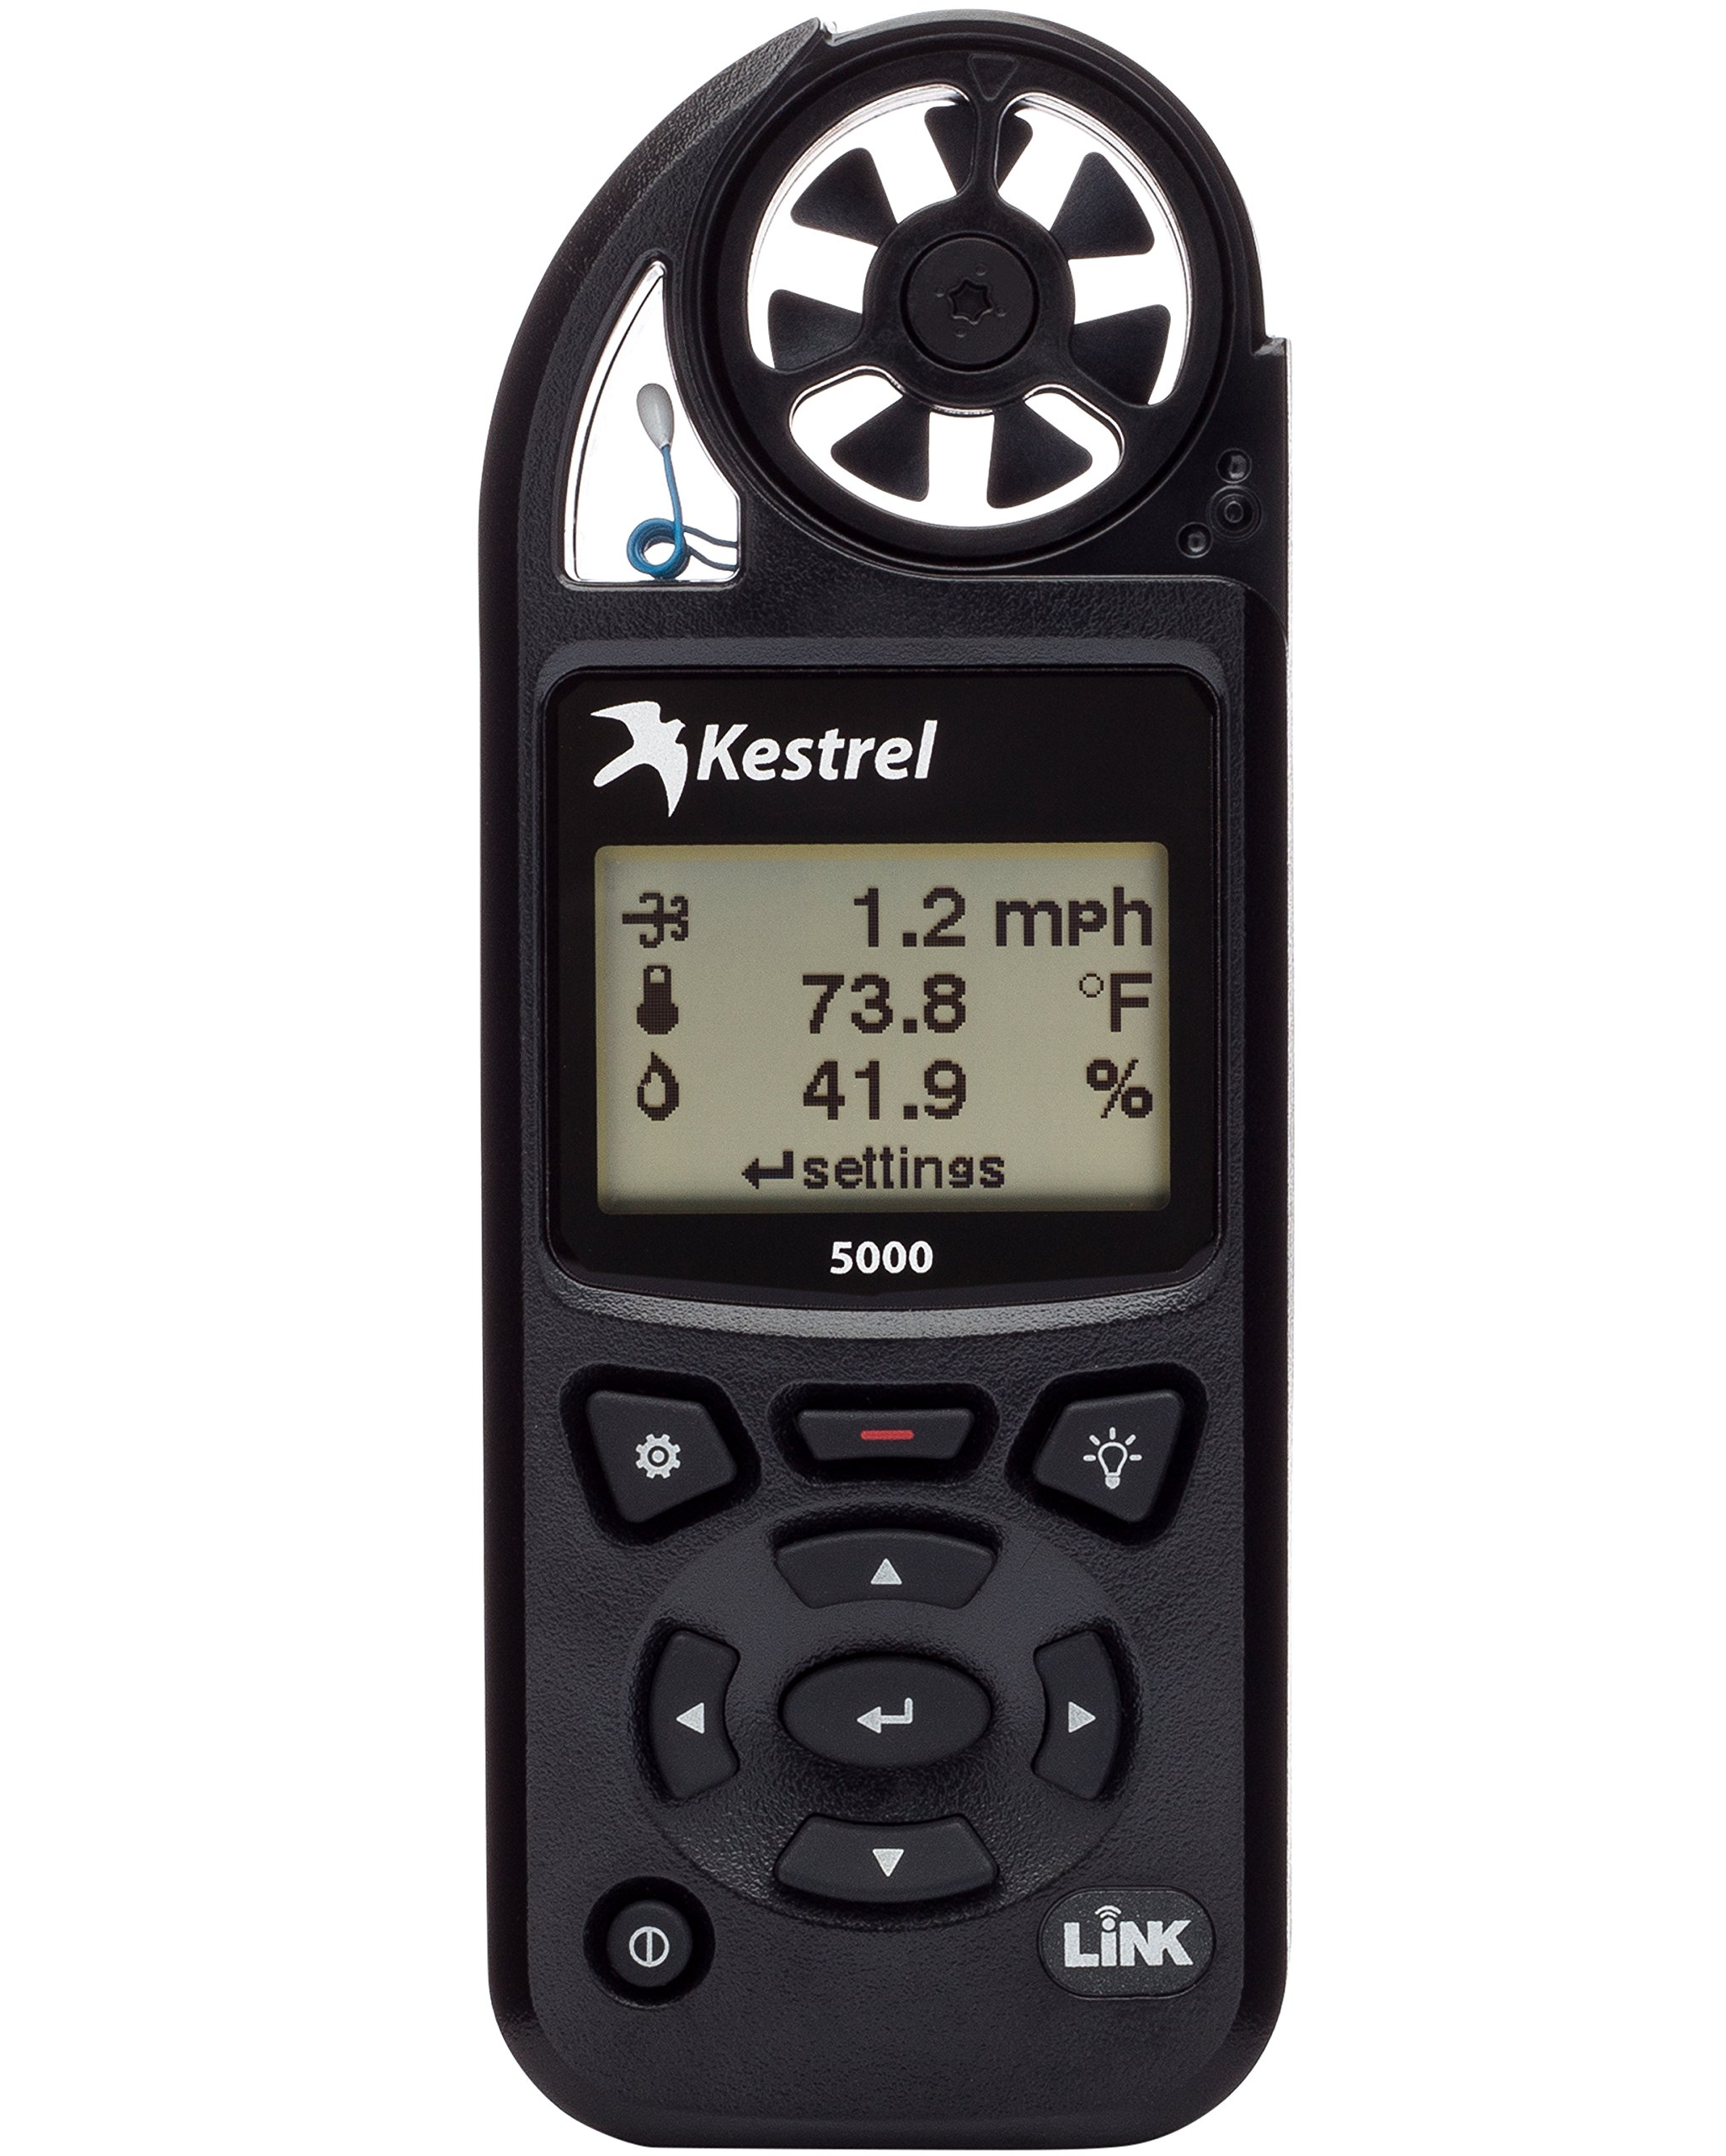 Kestrel 5000 Environmental Meter with Link by Kestrel